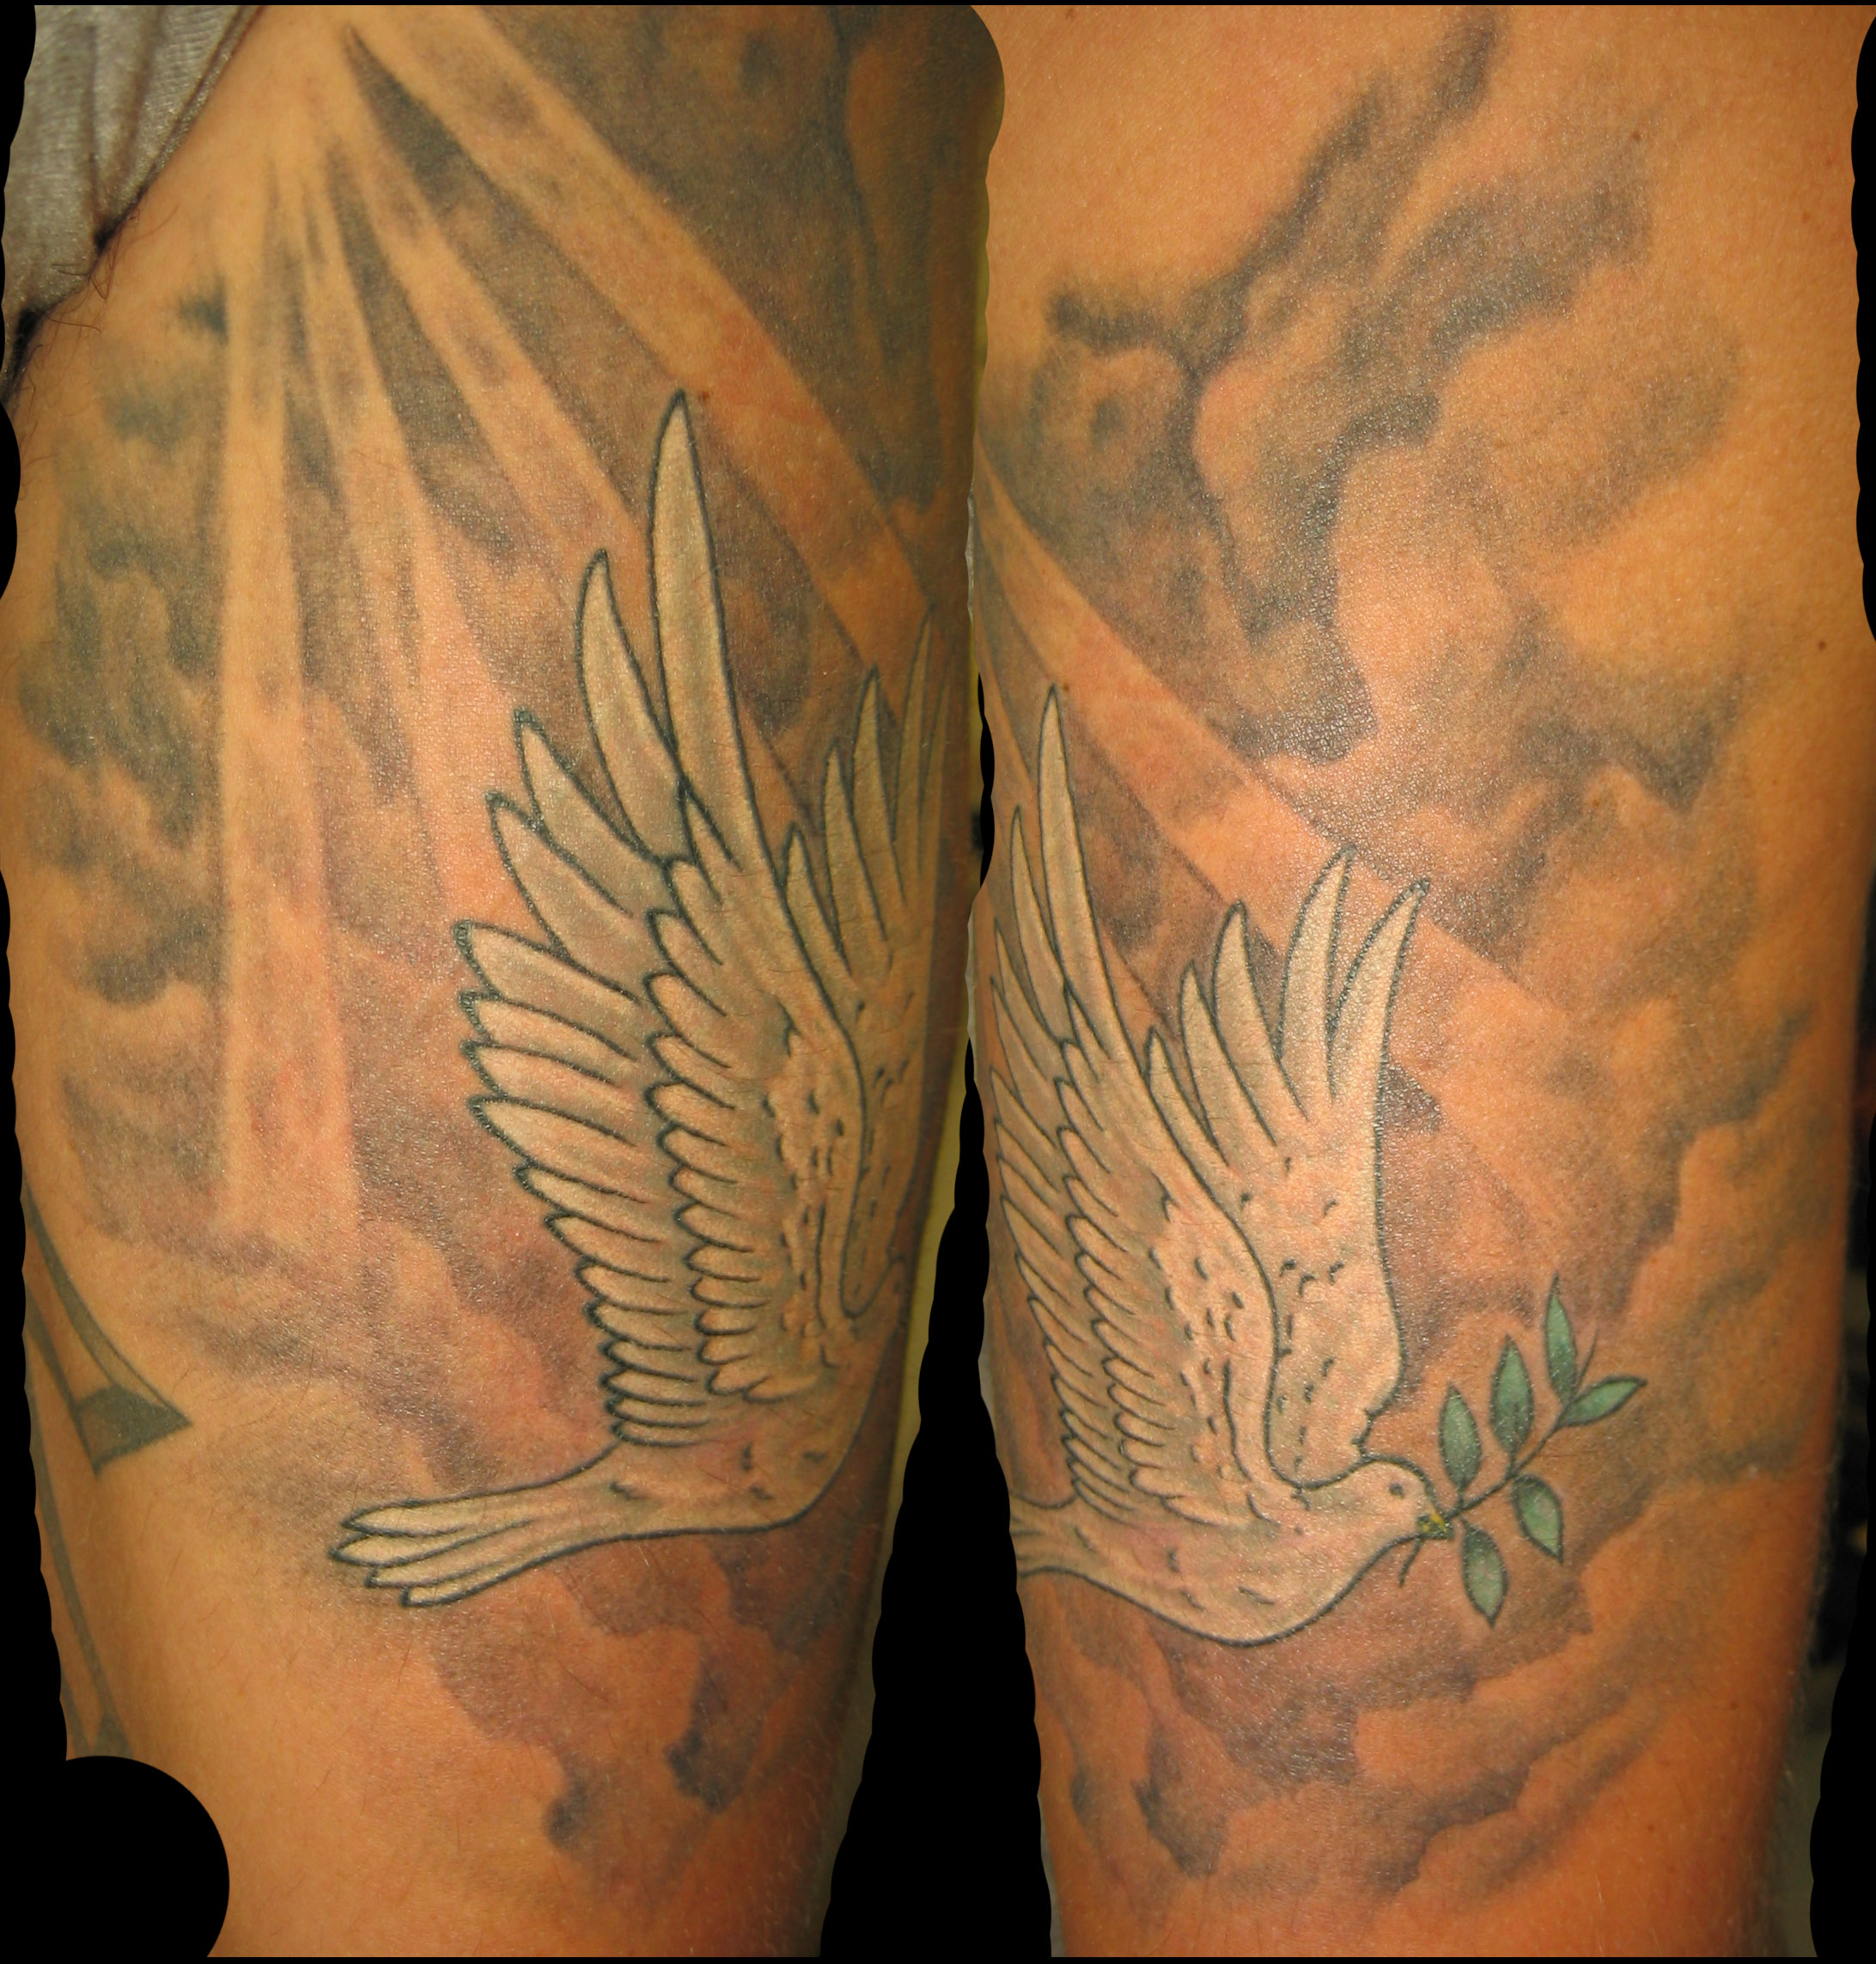 Doves and clouds tattoos